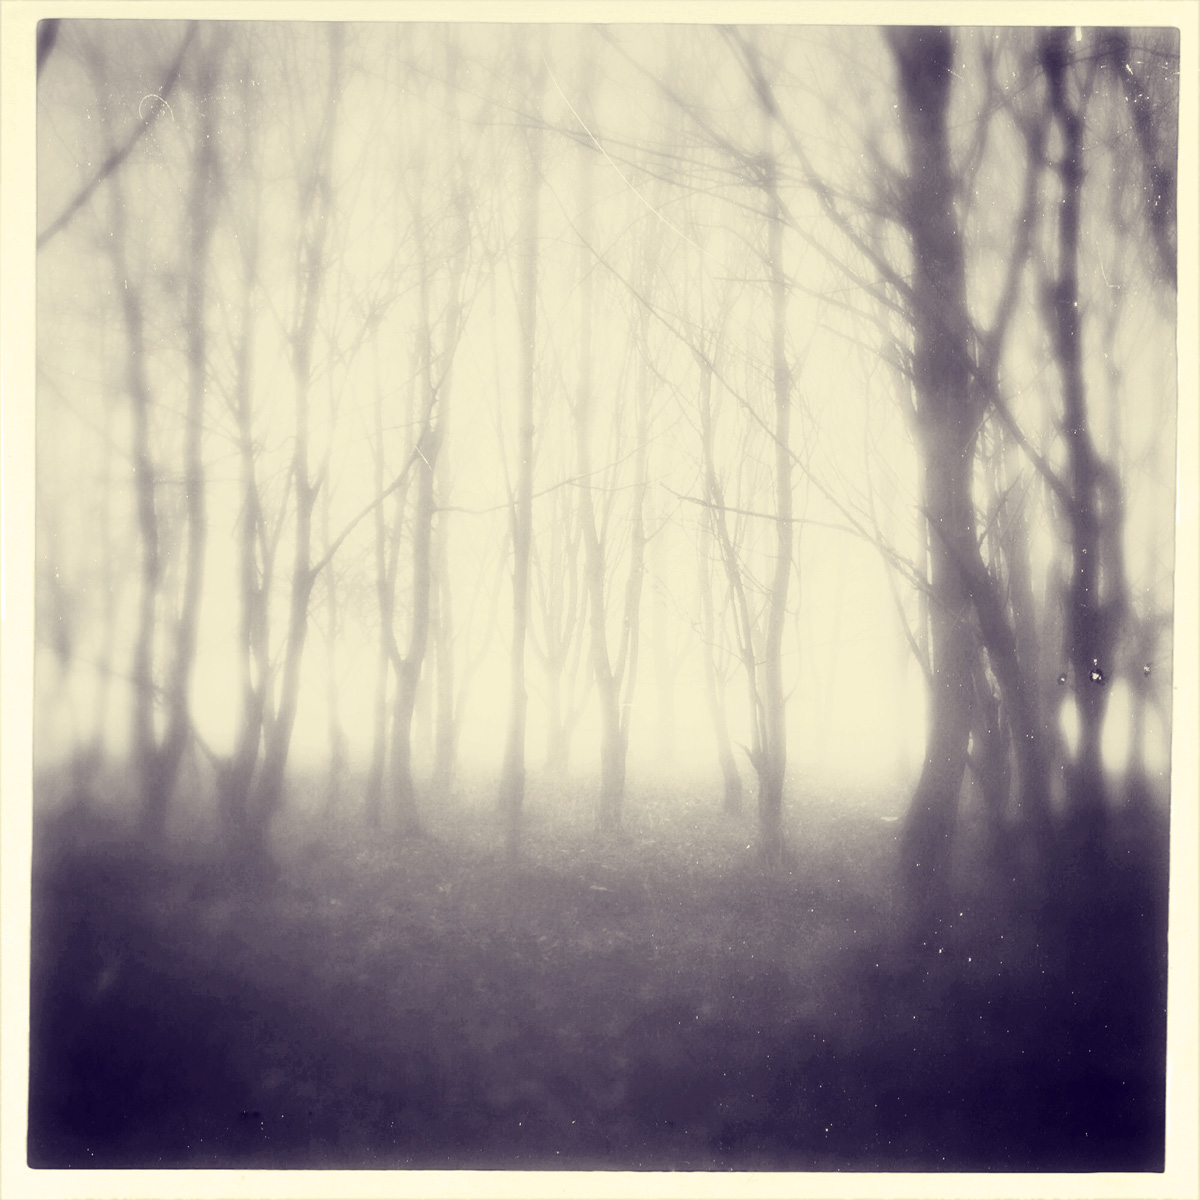 iphoneography - foggy trees